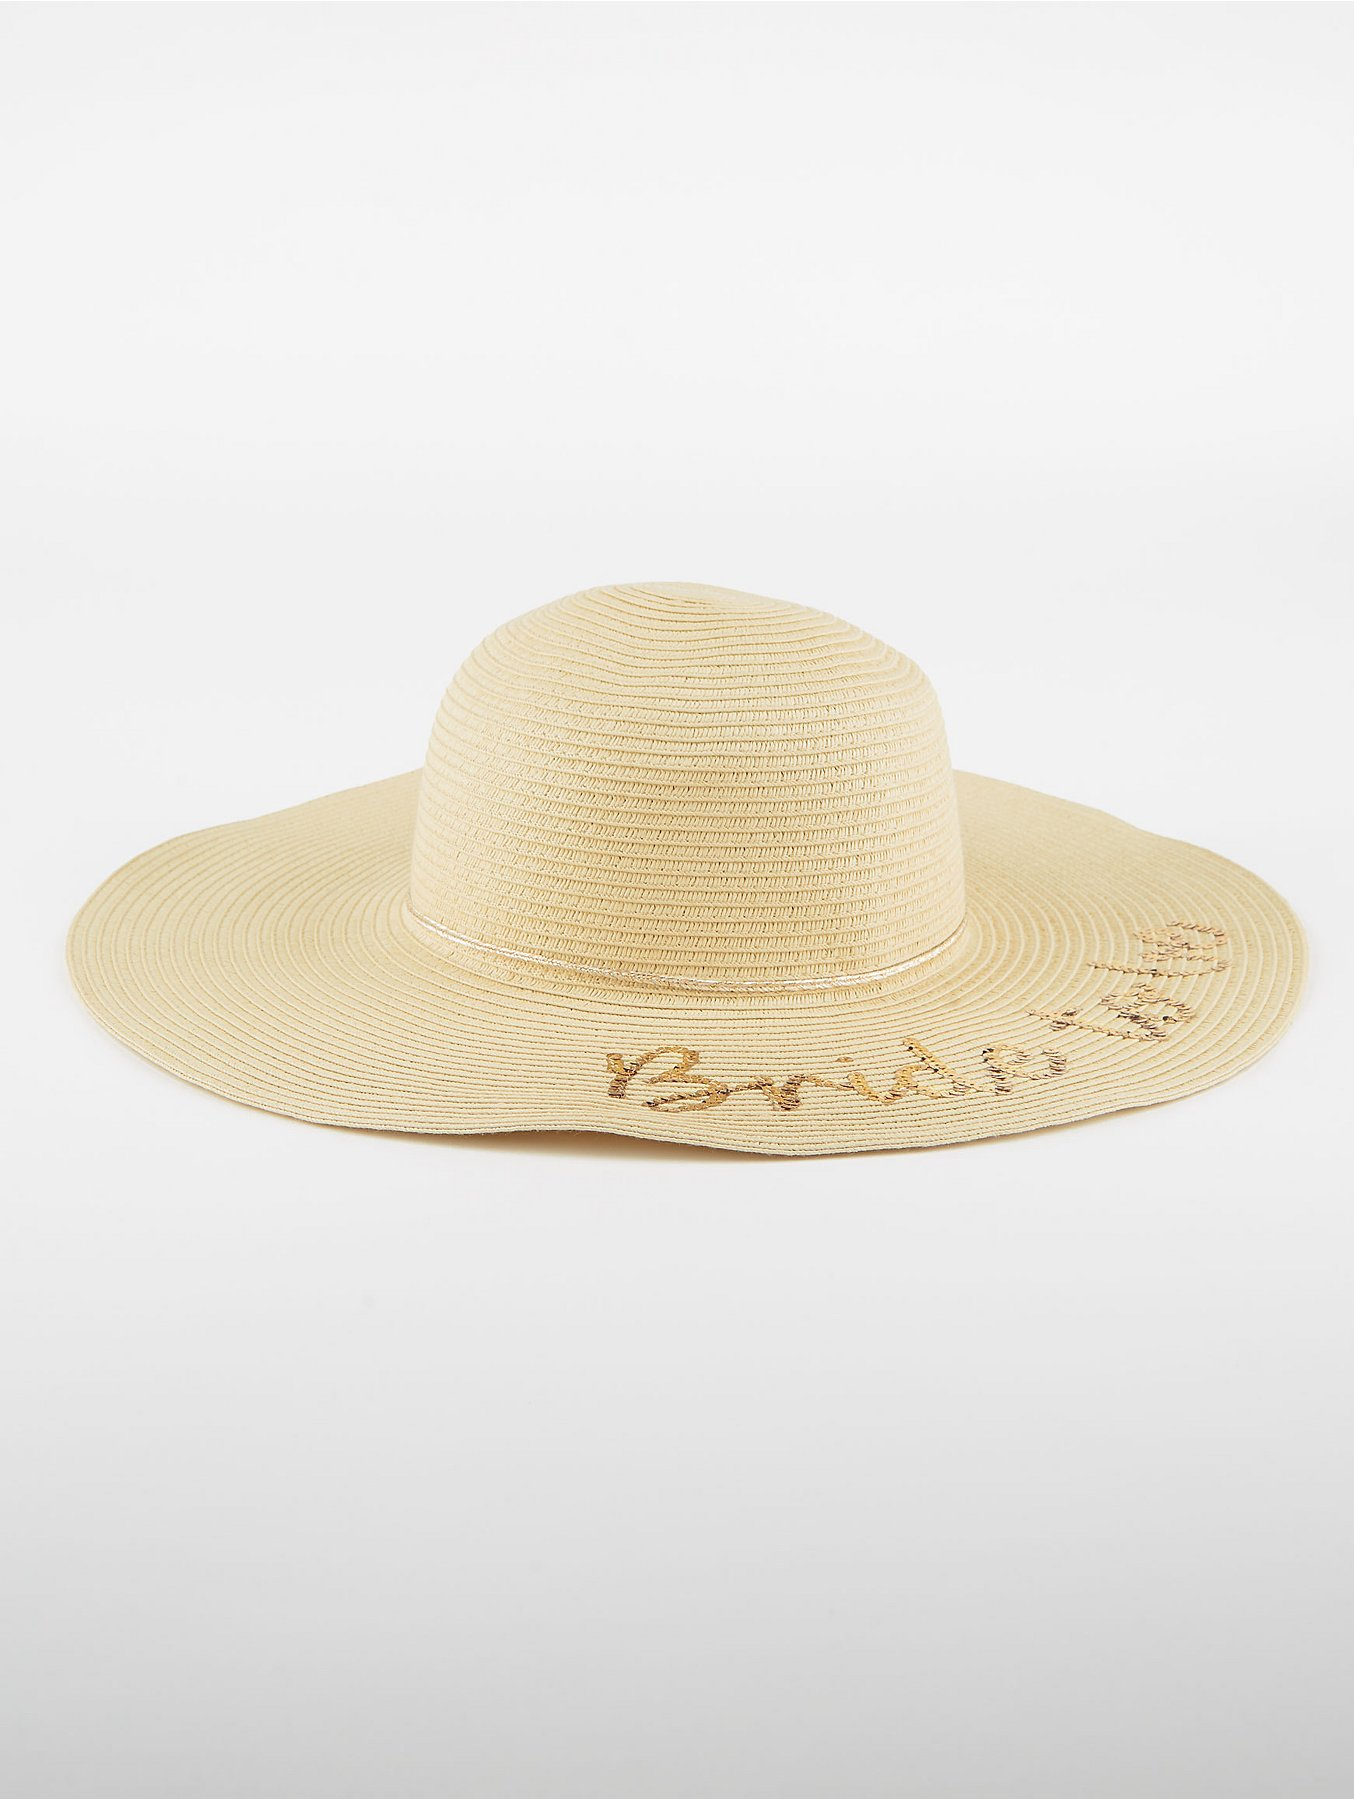 0b9573bb7b151 Bride to Be Woven Floppy Hat. Reset